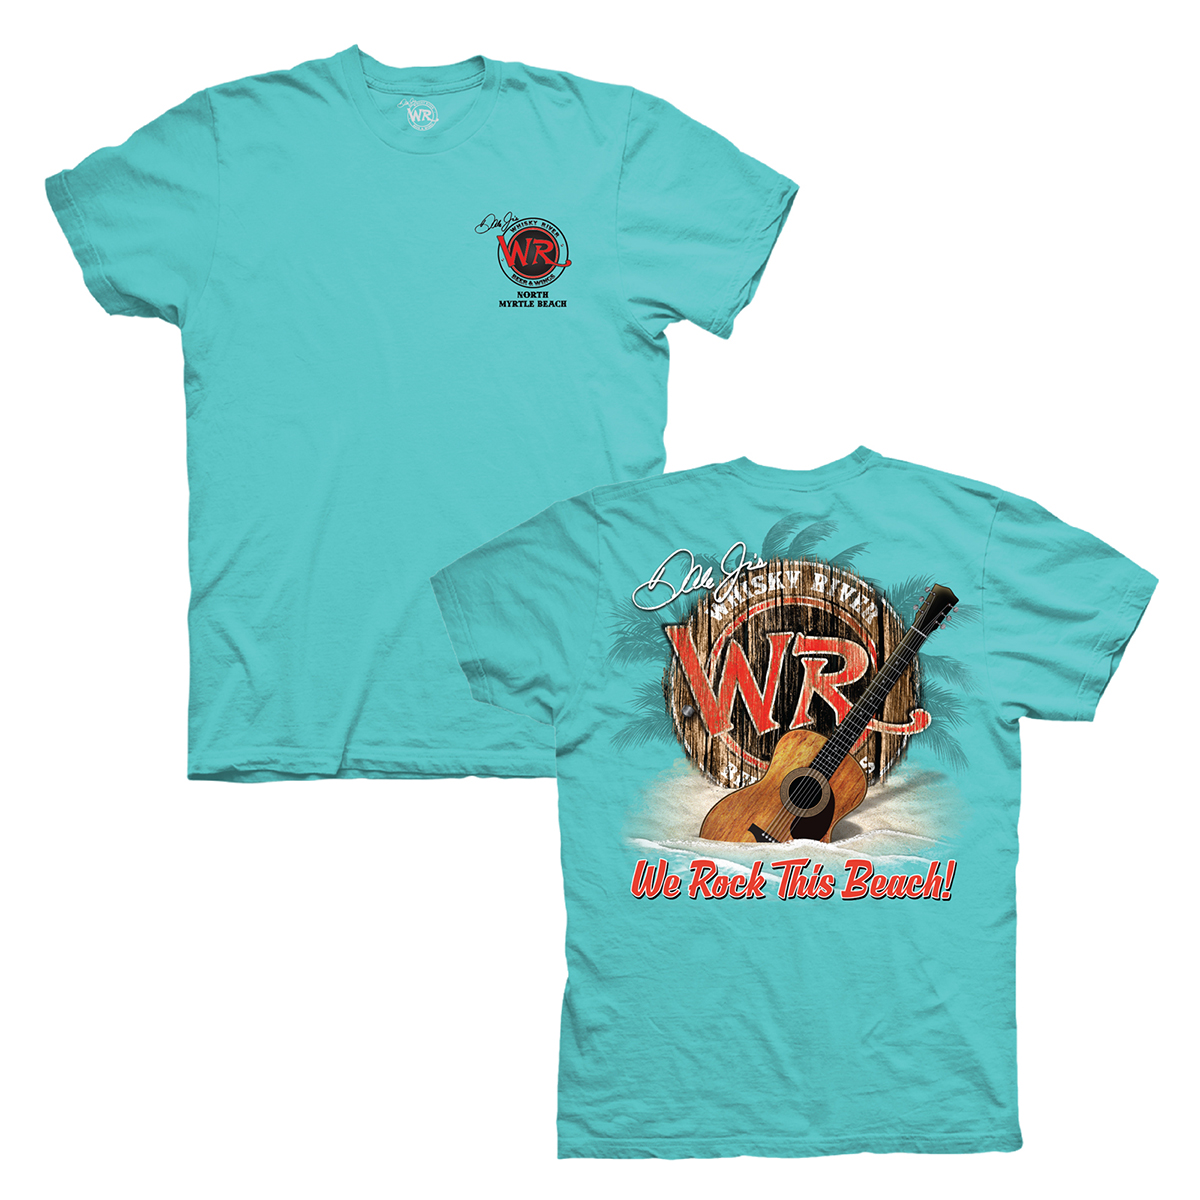 Whisky River North Myrtle Beach Rock the Beach T-shirt - Blue